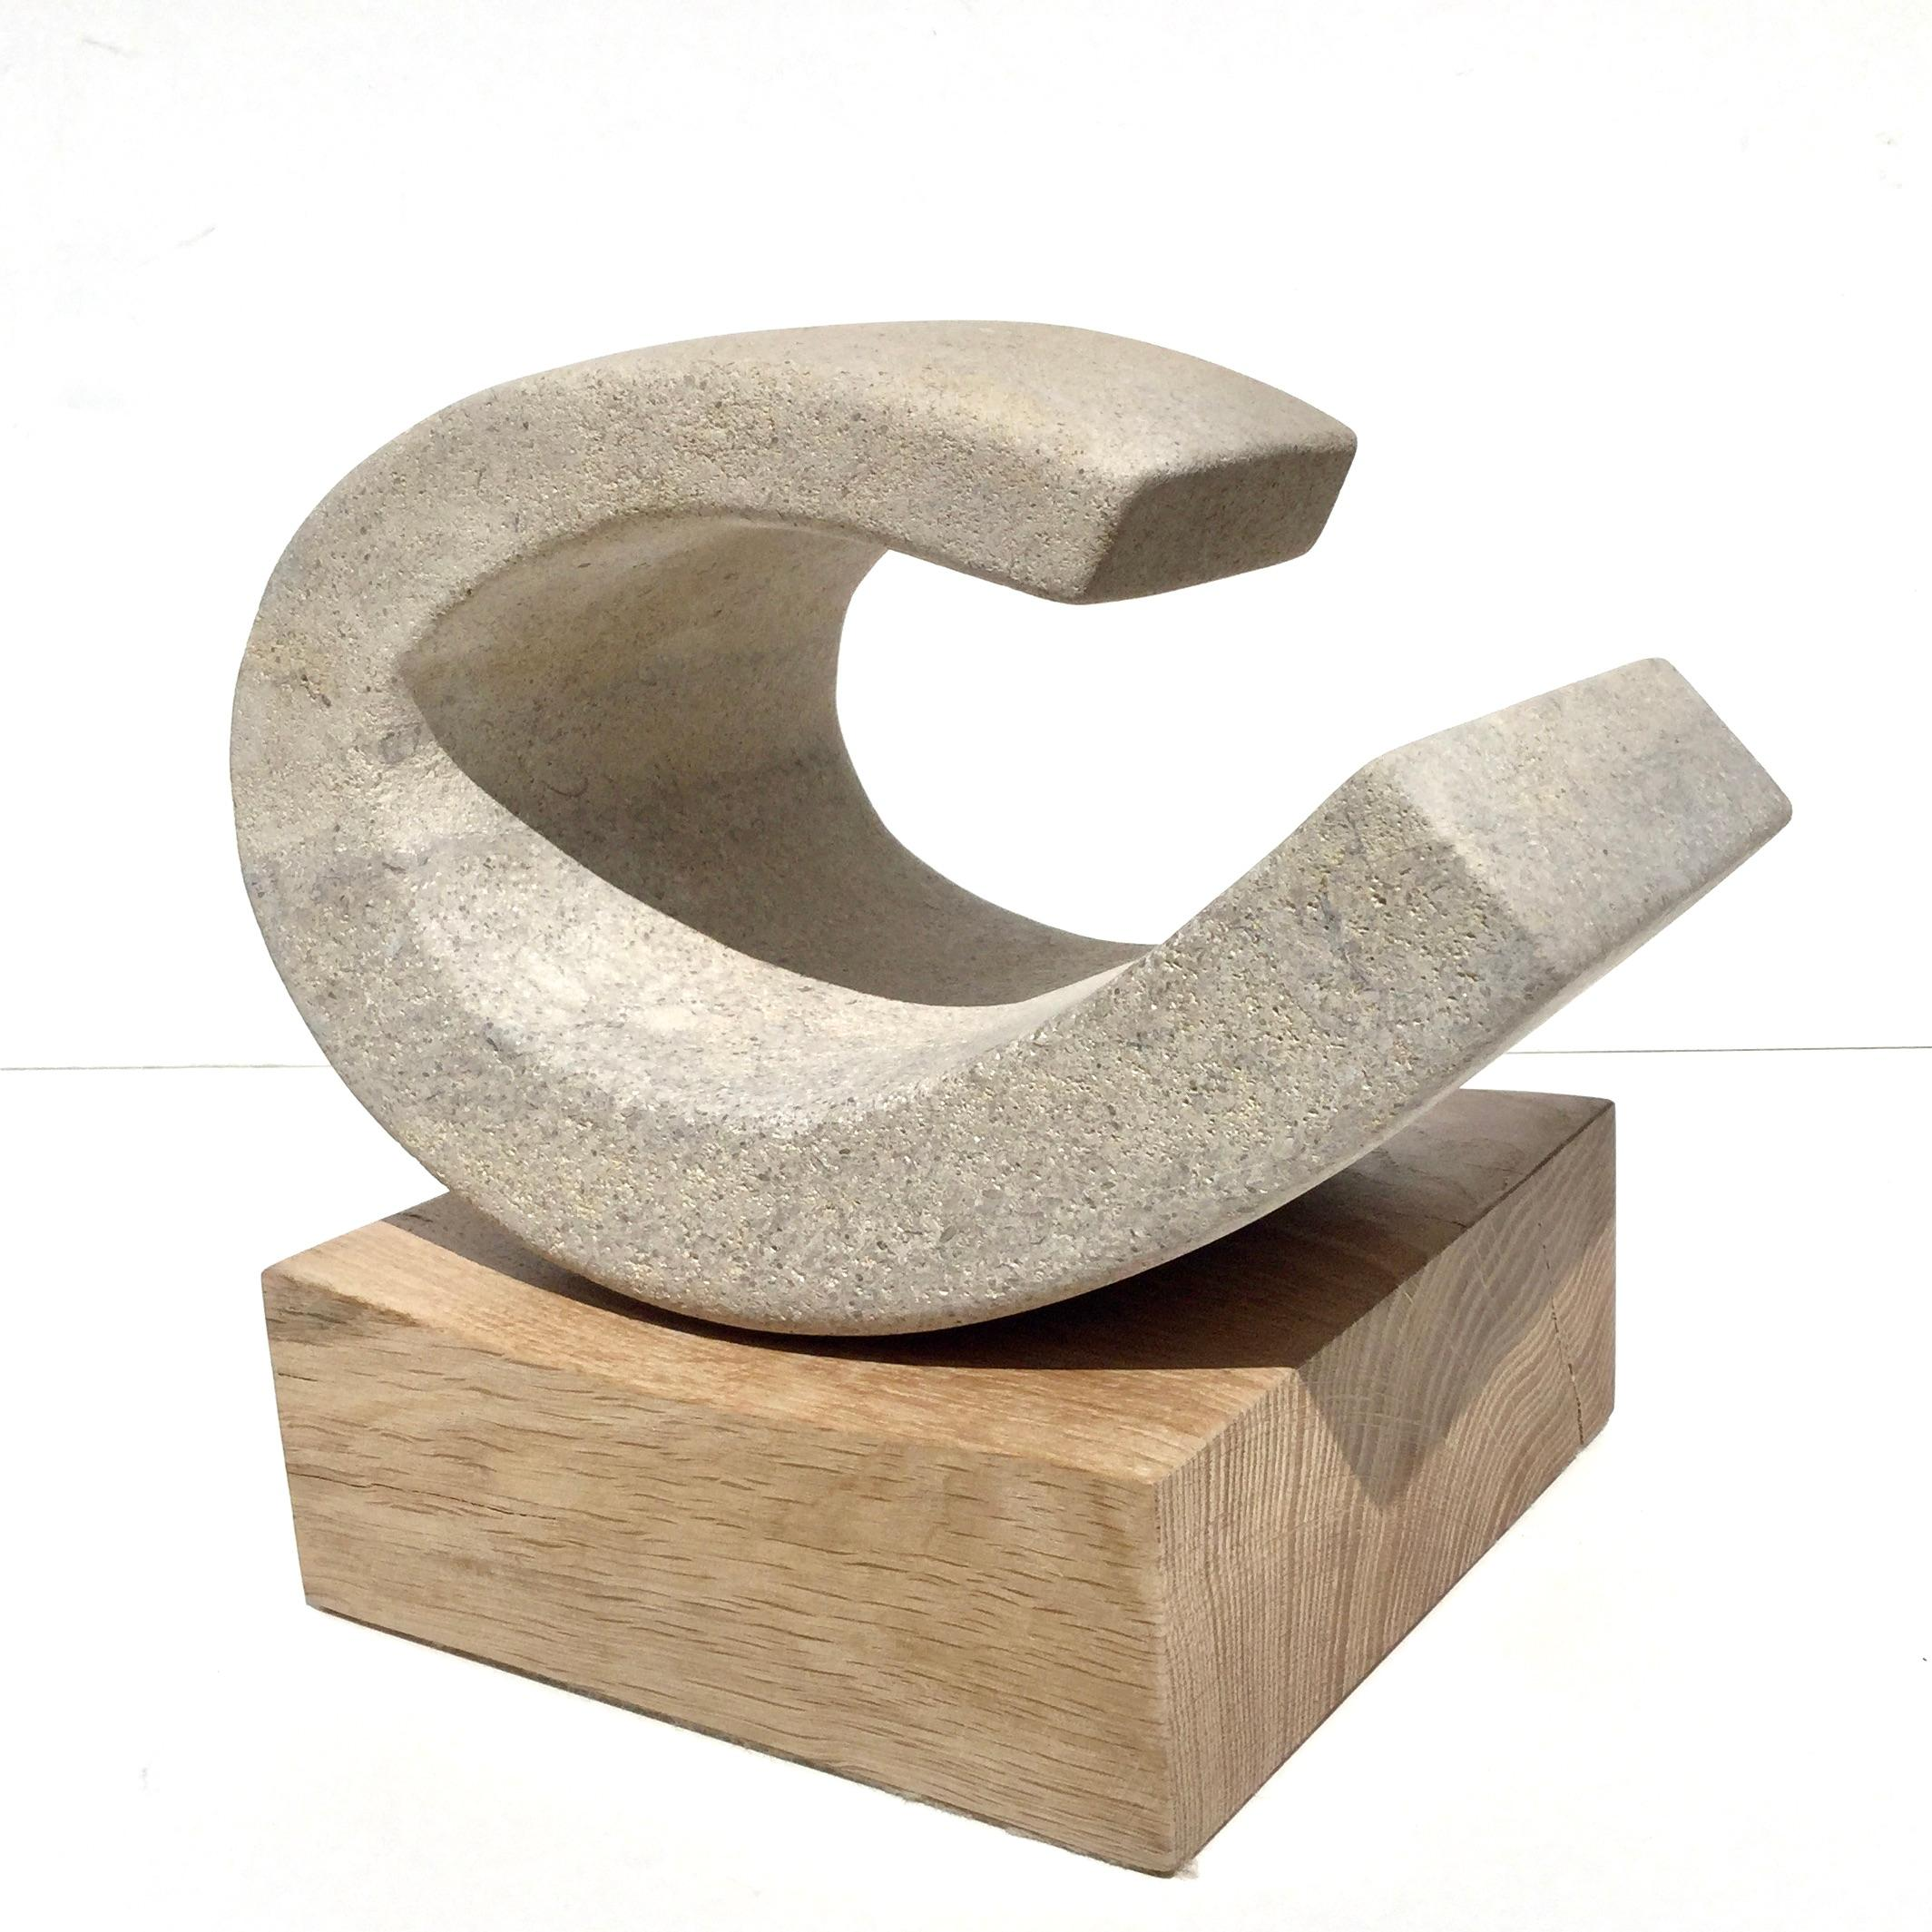 Wave II, 2020, Richard Fox. abstract stone sculpture on oak plinth, carved